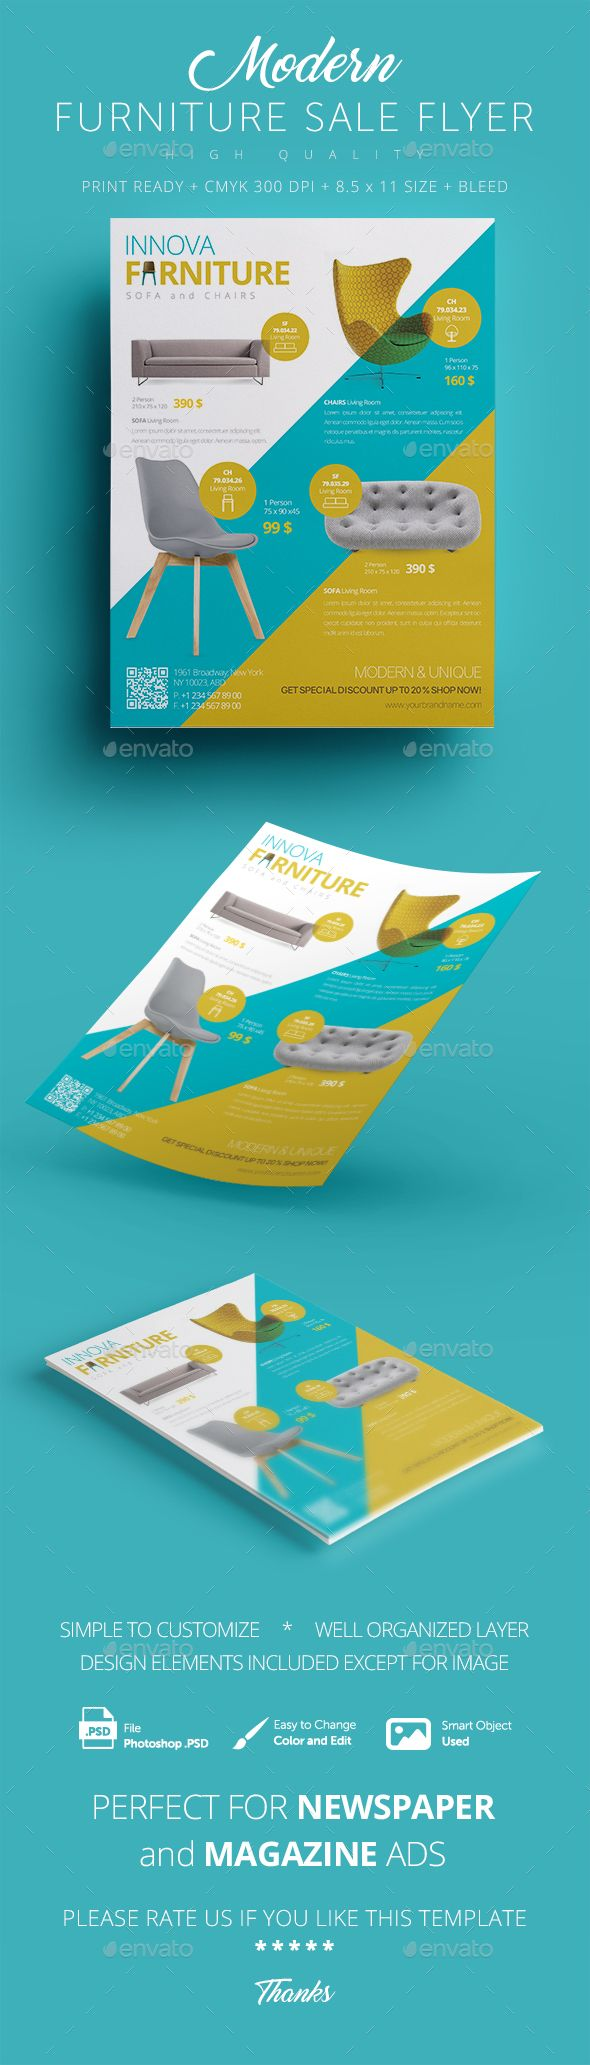 Furniture Sale Flyer Design Template - Commerce Flyers Template PSD. Download here: https://graphicriver.net/item/furniture-sale-flyer-/16984860?s_rank=16&ref=yinkira